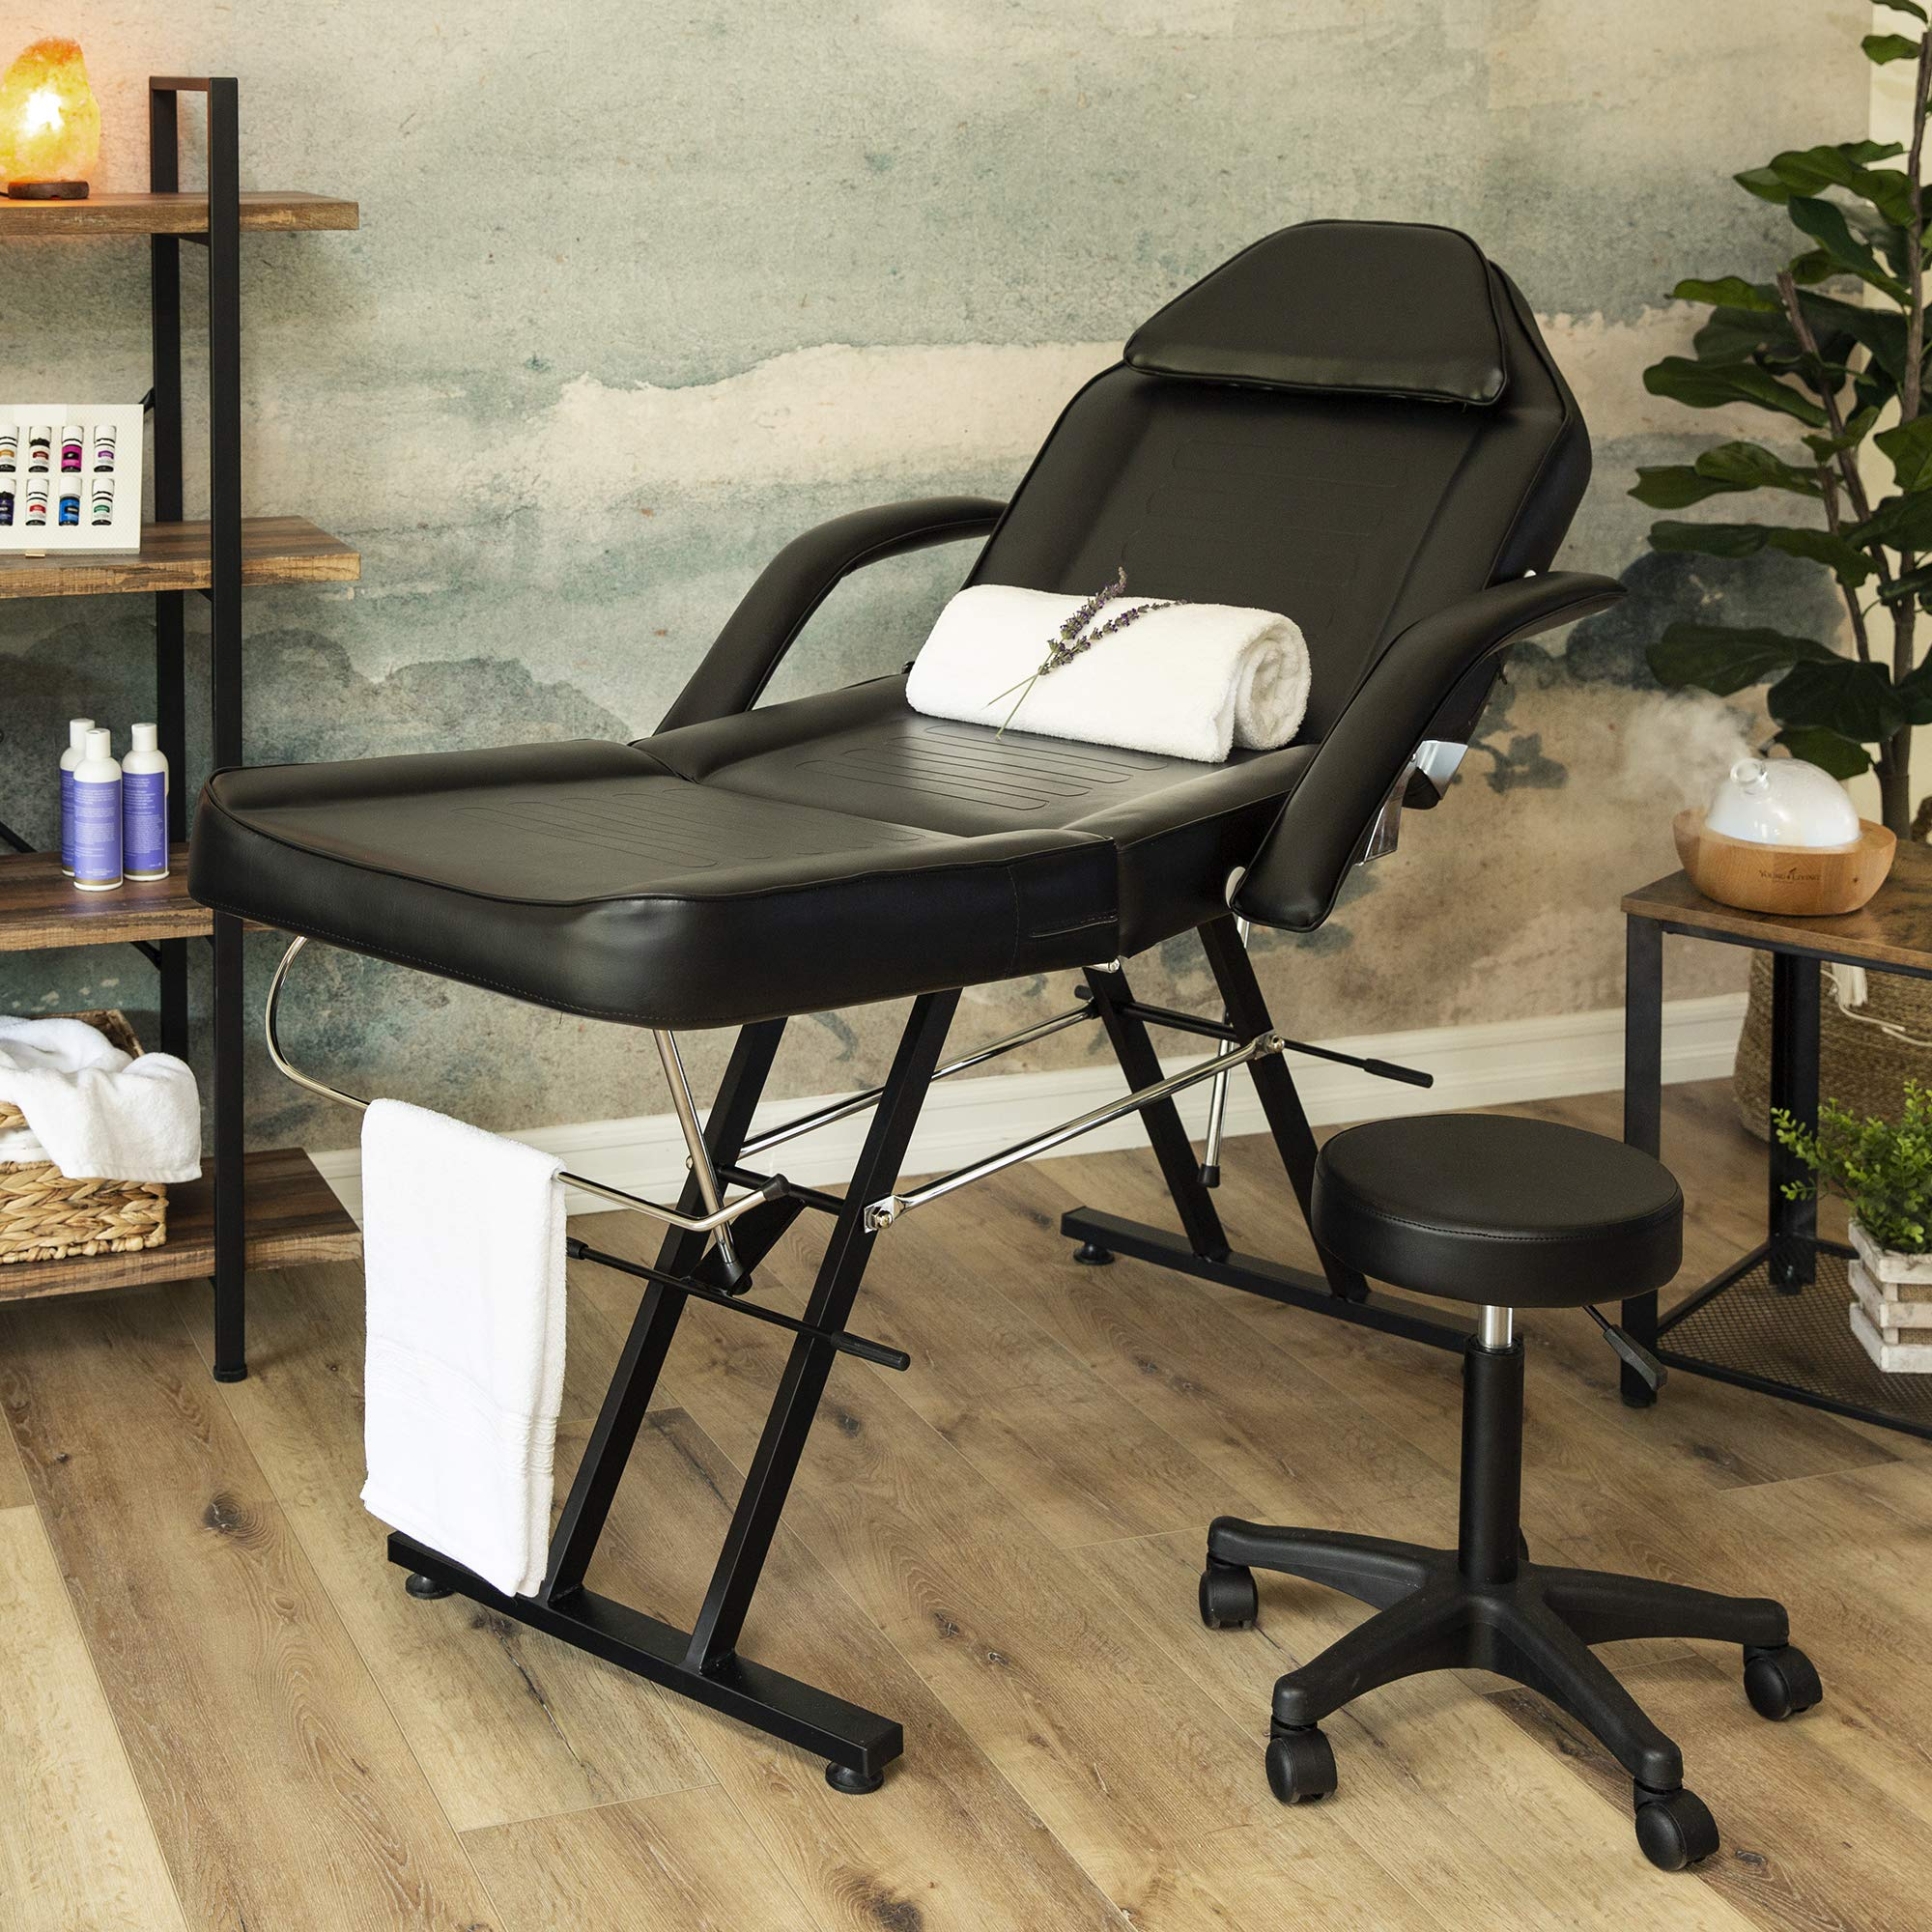 Best Choice Products 71in 3-Section Commercial Massage Bed, Spa and Salon Facial Chair, Tattoo Chair w/Hydraulic Stool, Removable Headrest, Facial Cradle, Towel Hanger by Best Choice Products